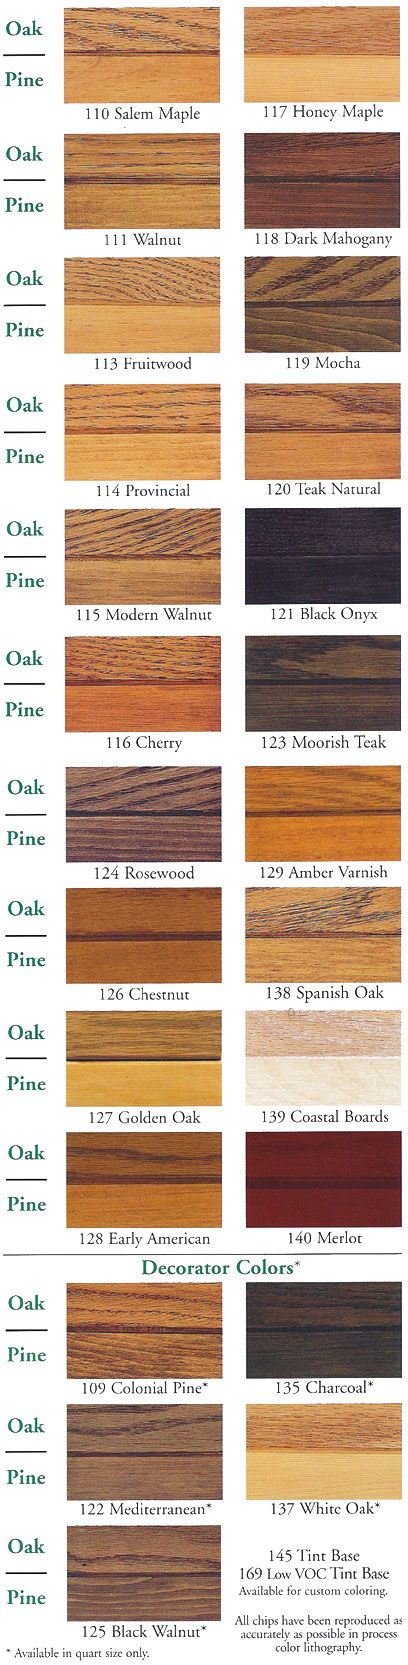 25 Best Ideas About Wood Stain On Pinterest Stain